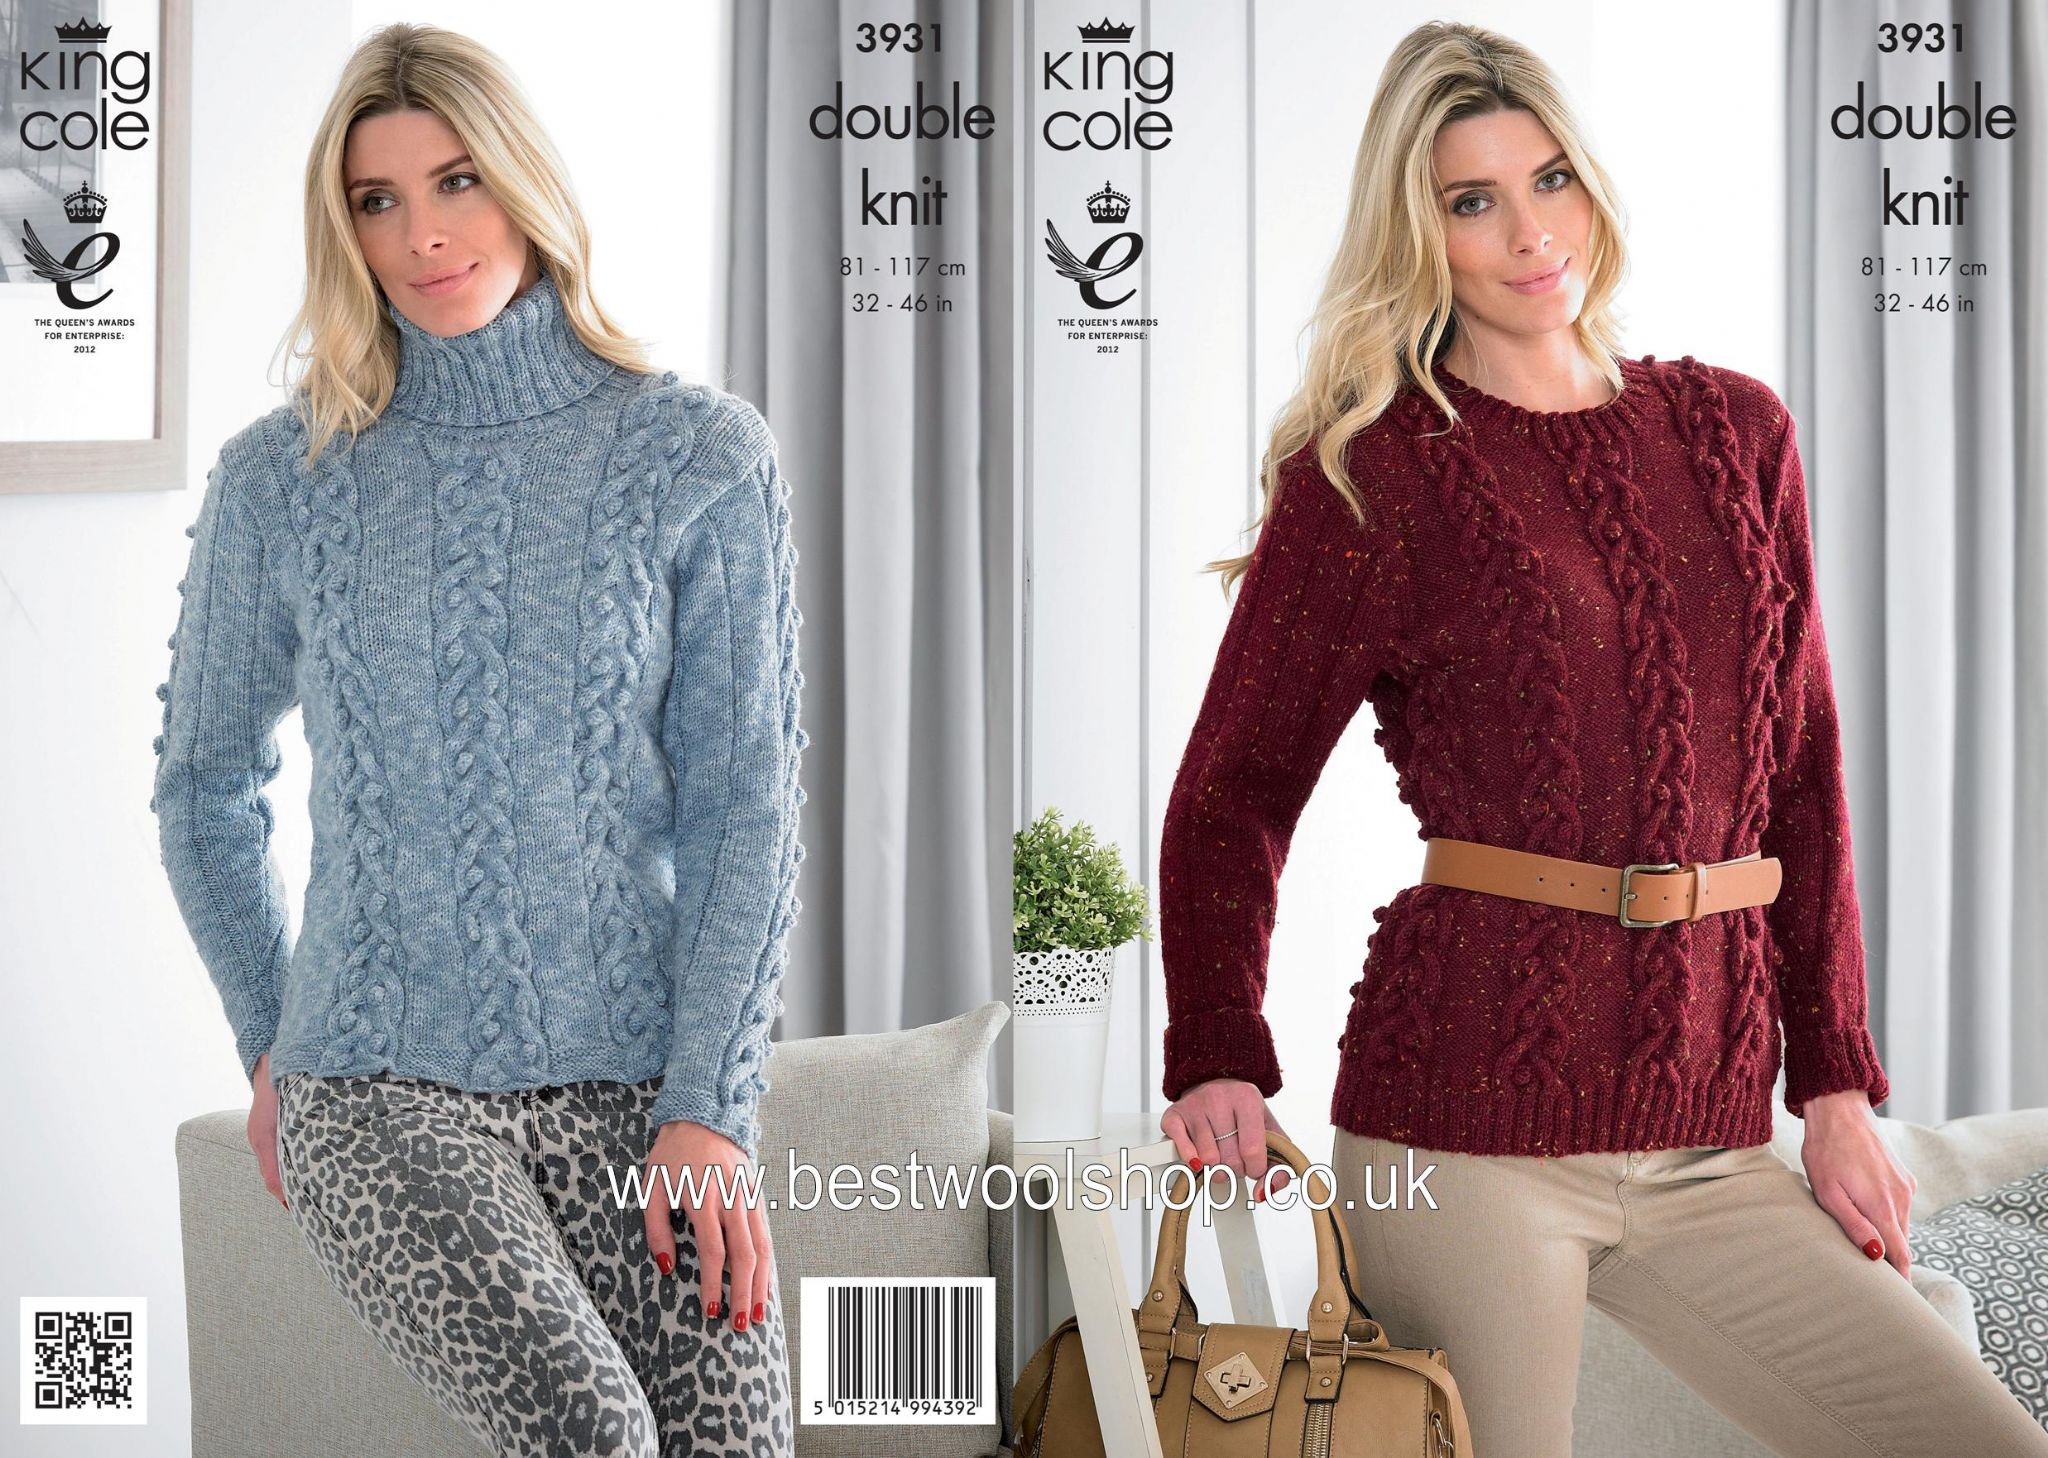 3931 king cole moods dk round polo neck cabled sweater 3931 king cole moods dk round polo neck cabled sweater knitting pattern to fit chest 32 to 46 4 bankloansurffo Image collections